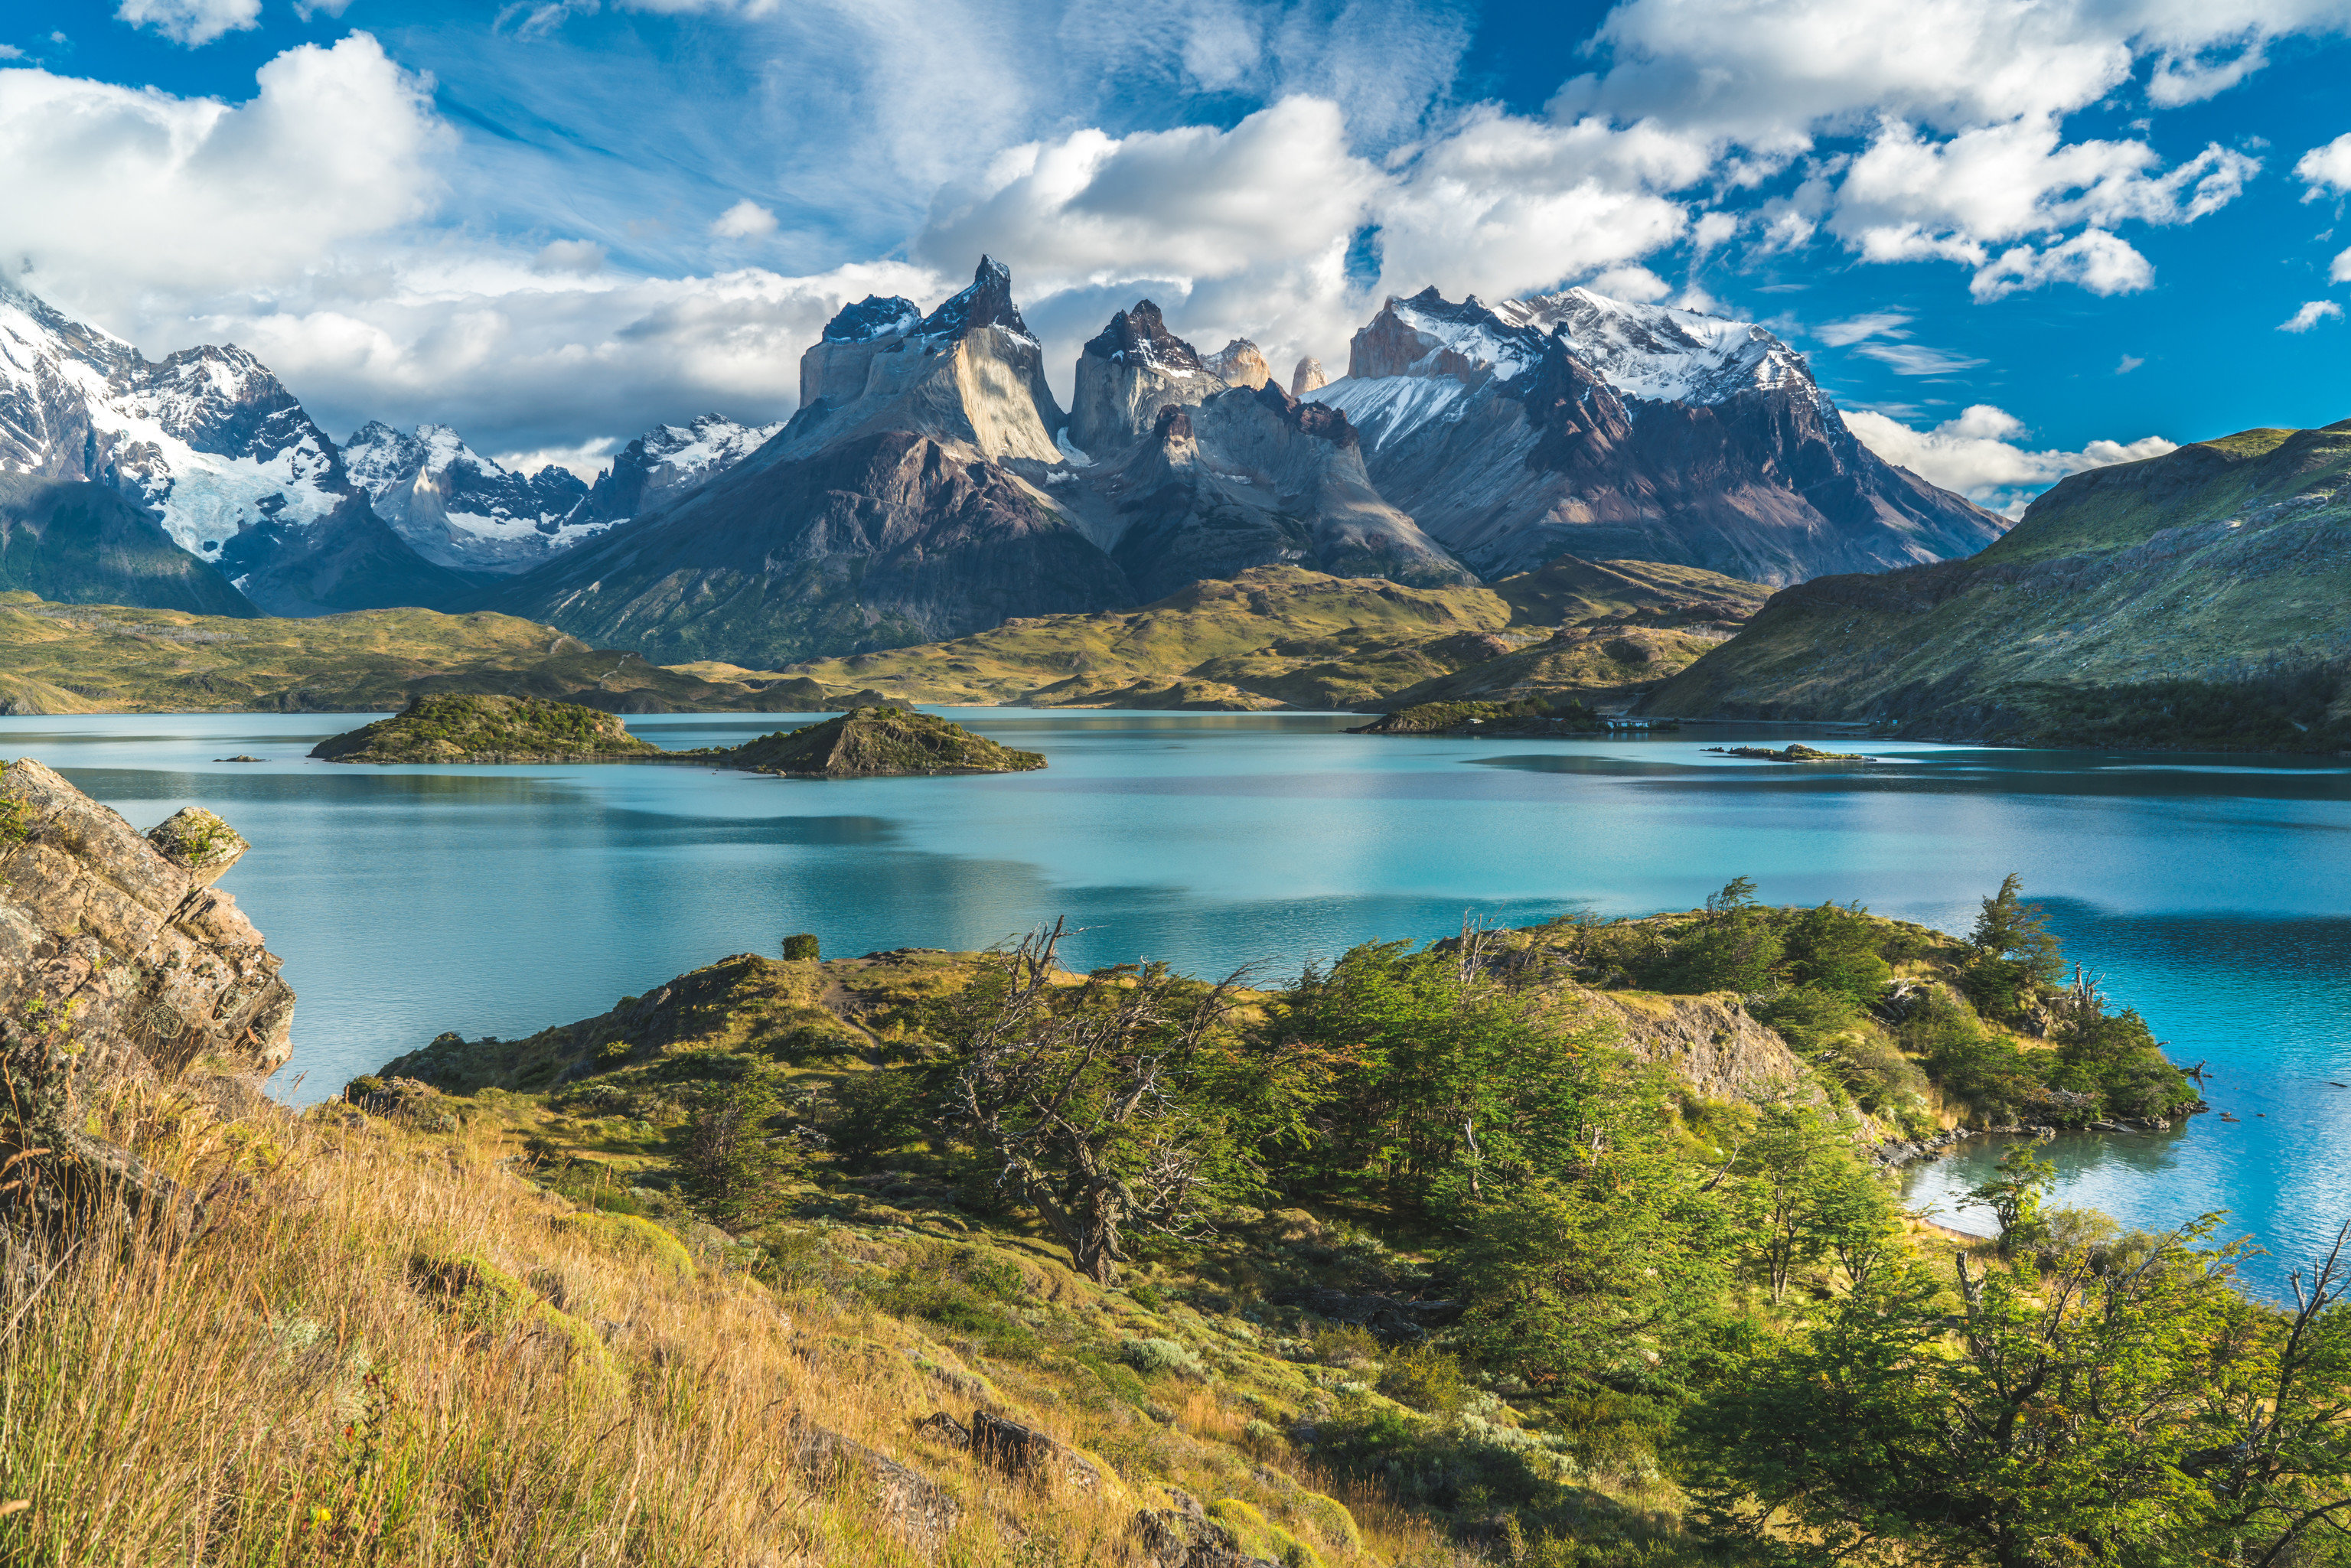 Outdoors + Adventure mountain outdoor sky Nature grass water mountainous landforms wilderness highland reflection mount scenery Lake canyon fell mountain range fjord cloud national park tarn bank landscape hillside tree River alps loch reservoir hill elevation glacial landform crater lake tundra overlooking surrounded lush